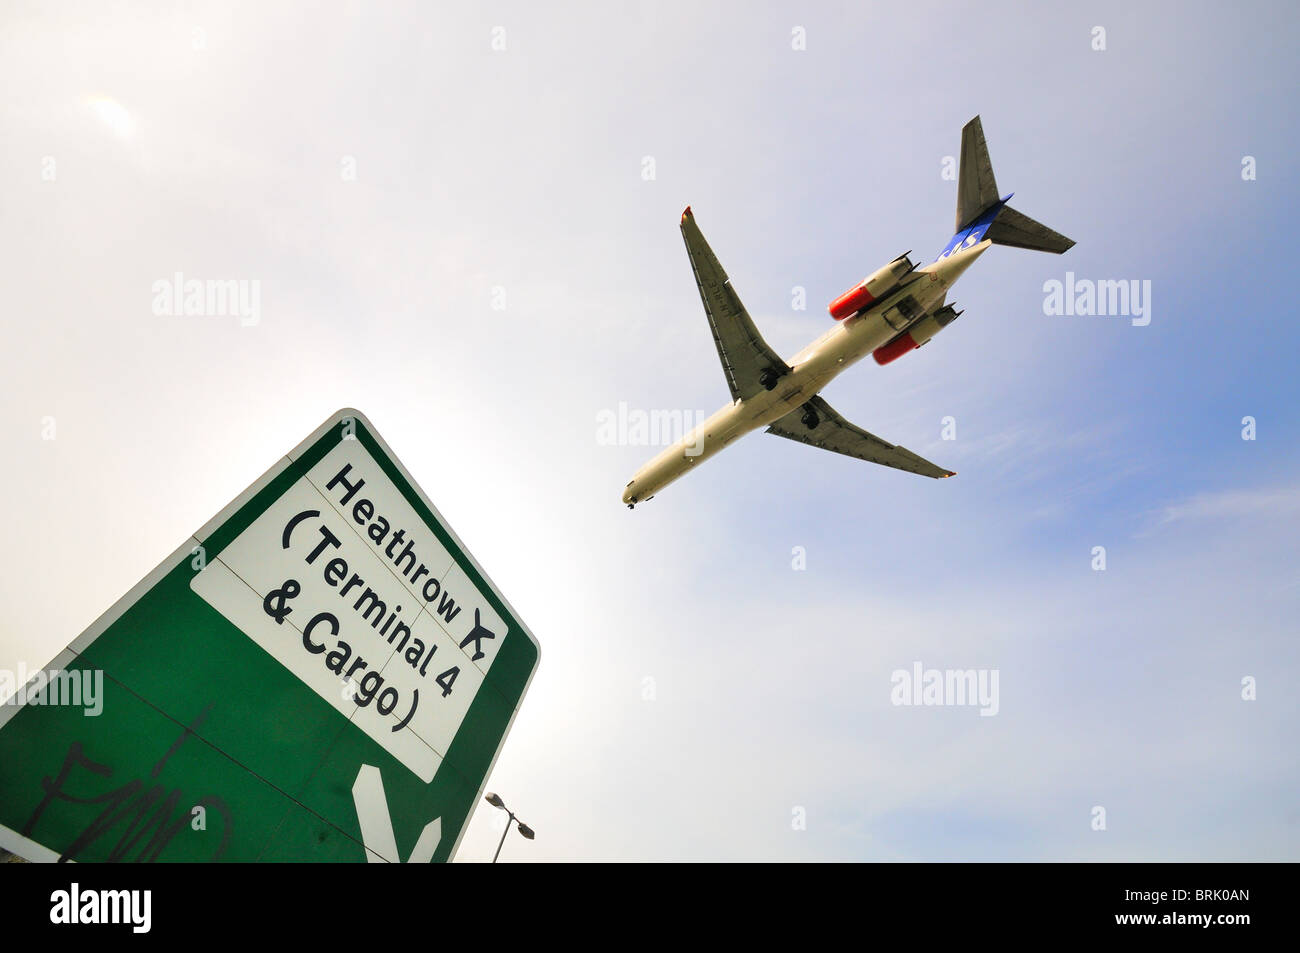 Low flying passenger aircraft  landing at Heathrow  airport, London Stock Photo